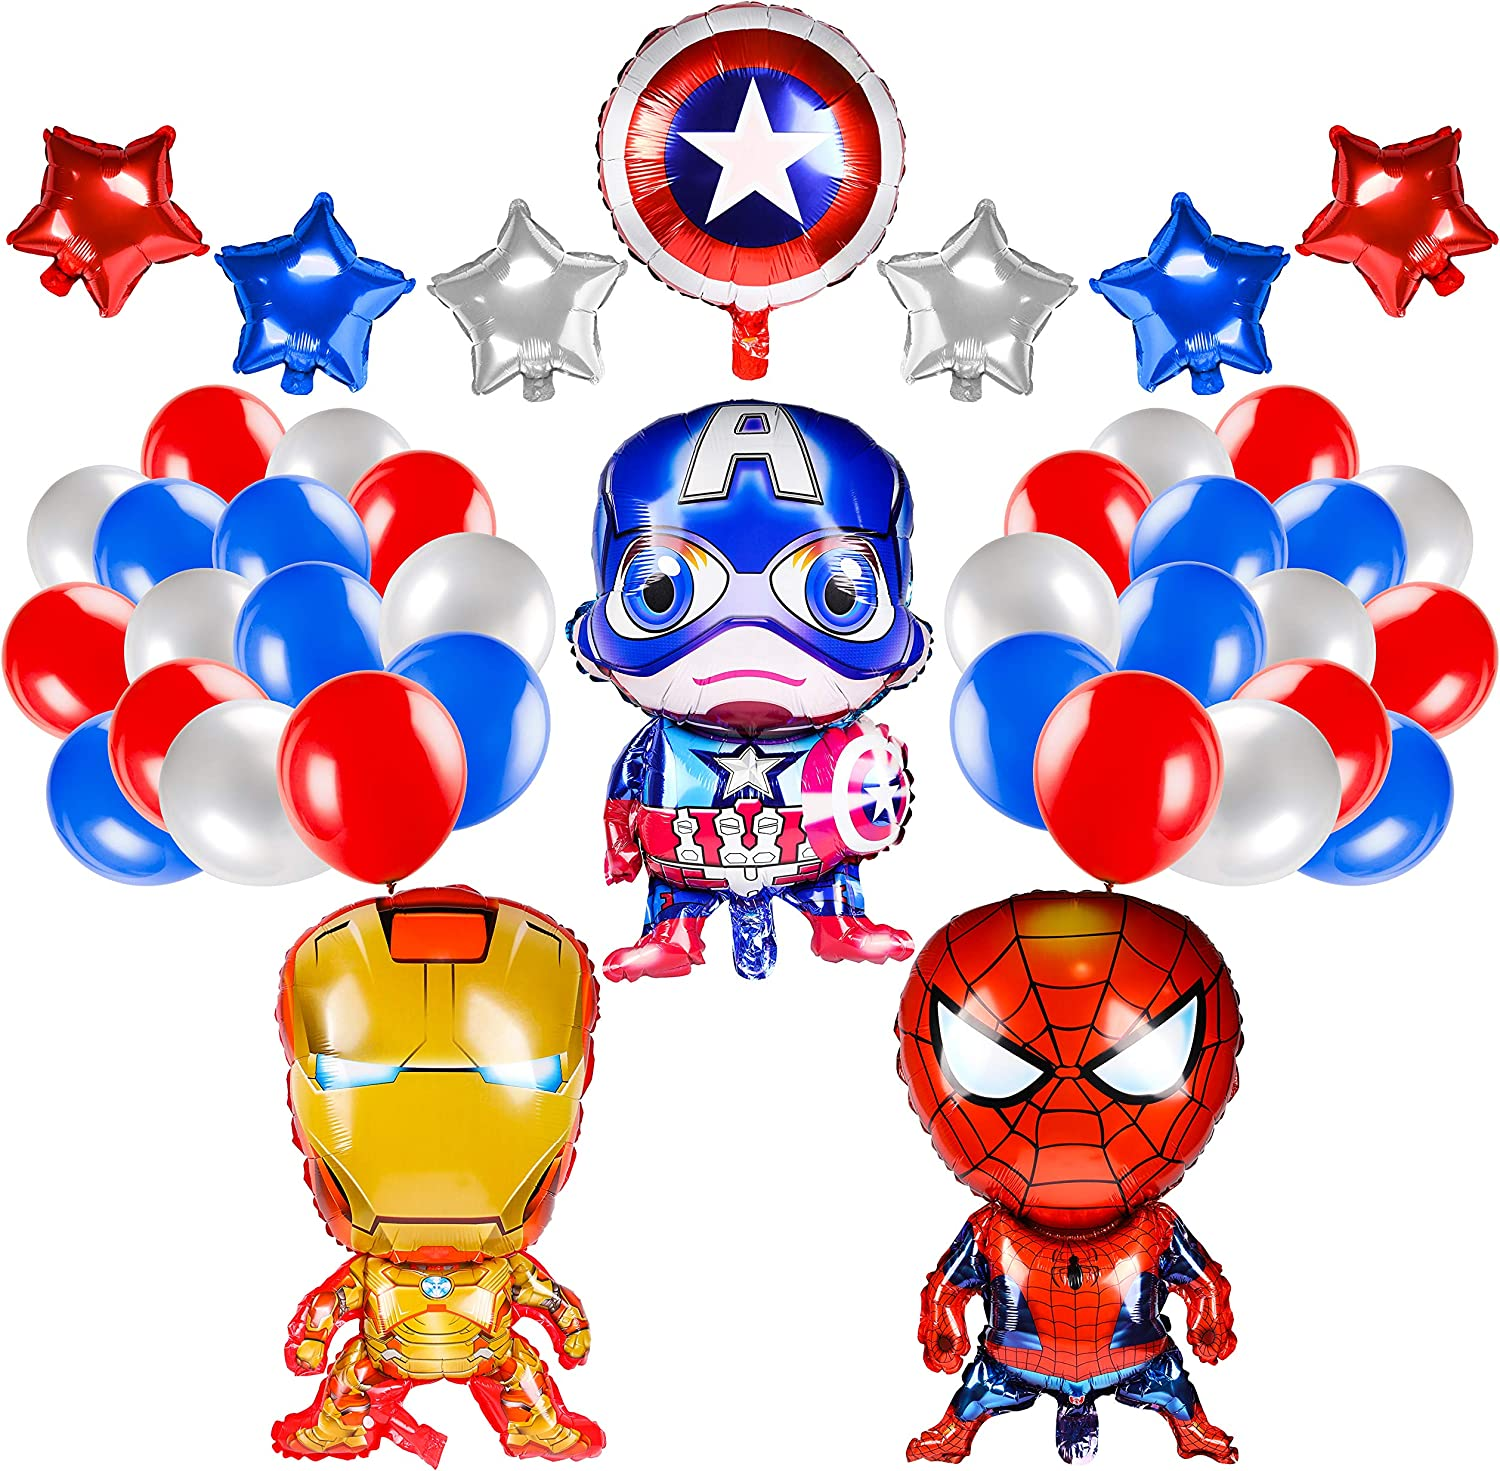 PANTIDE 40Pcs Superhero Balloons Birthday Party Supplies, Superheroes Foil Balloons Decorations Kit for Kids Superhero Theme Party Favors Baby Shower Christmas